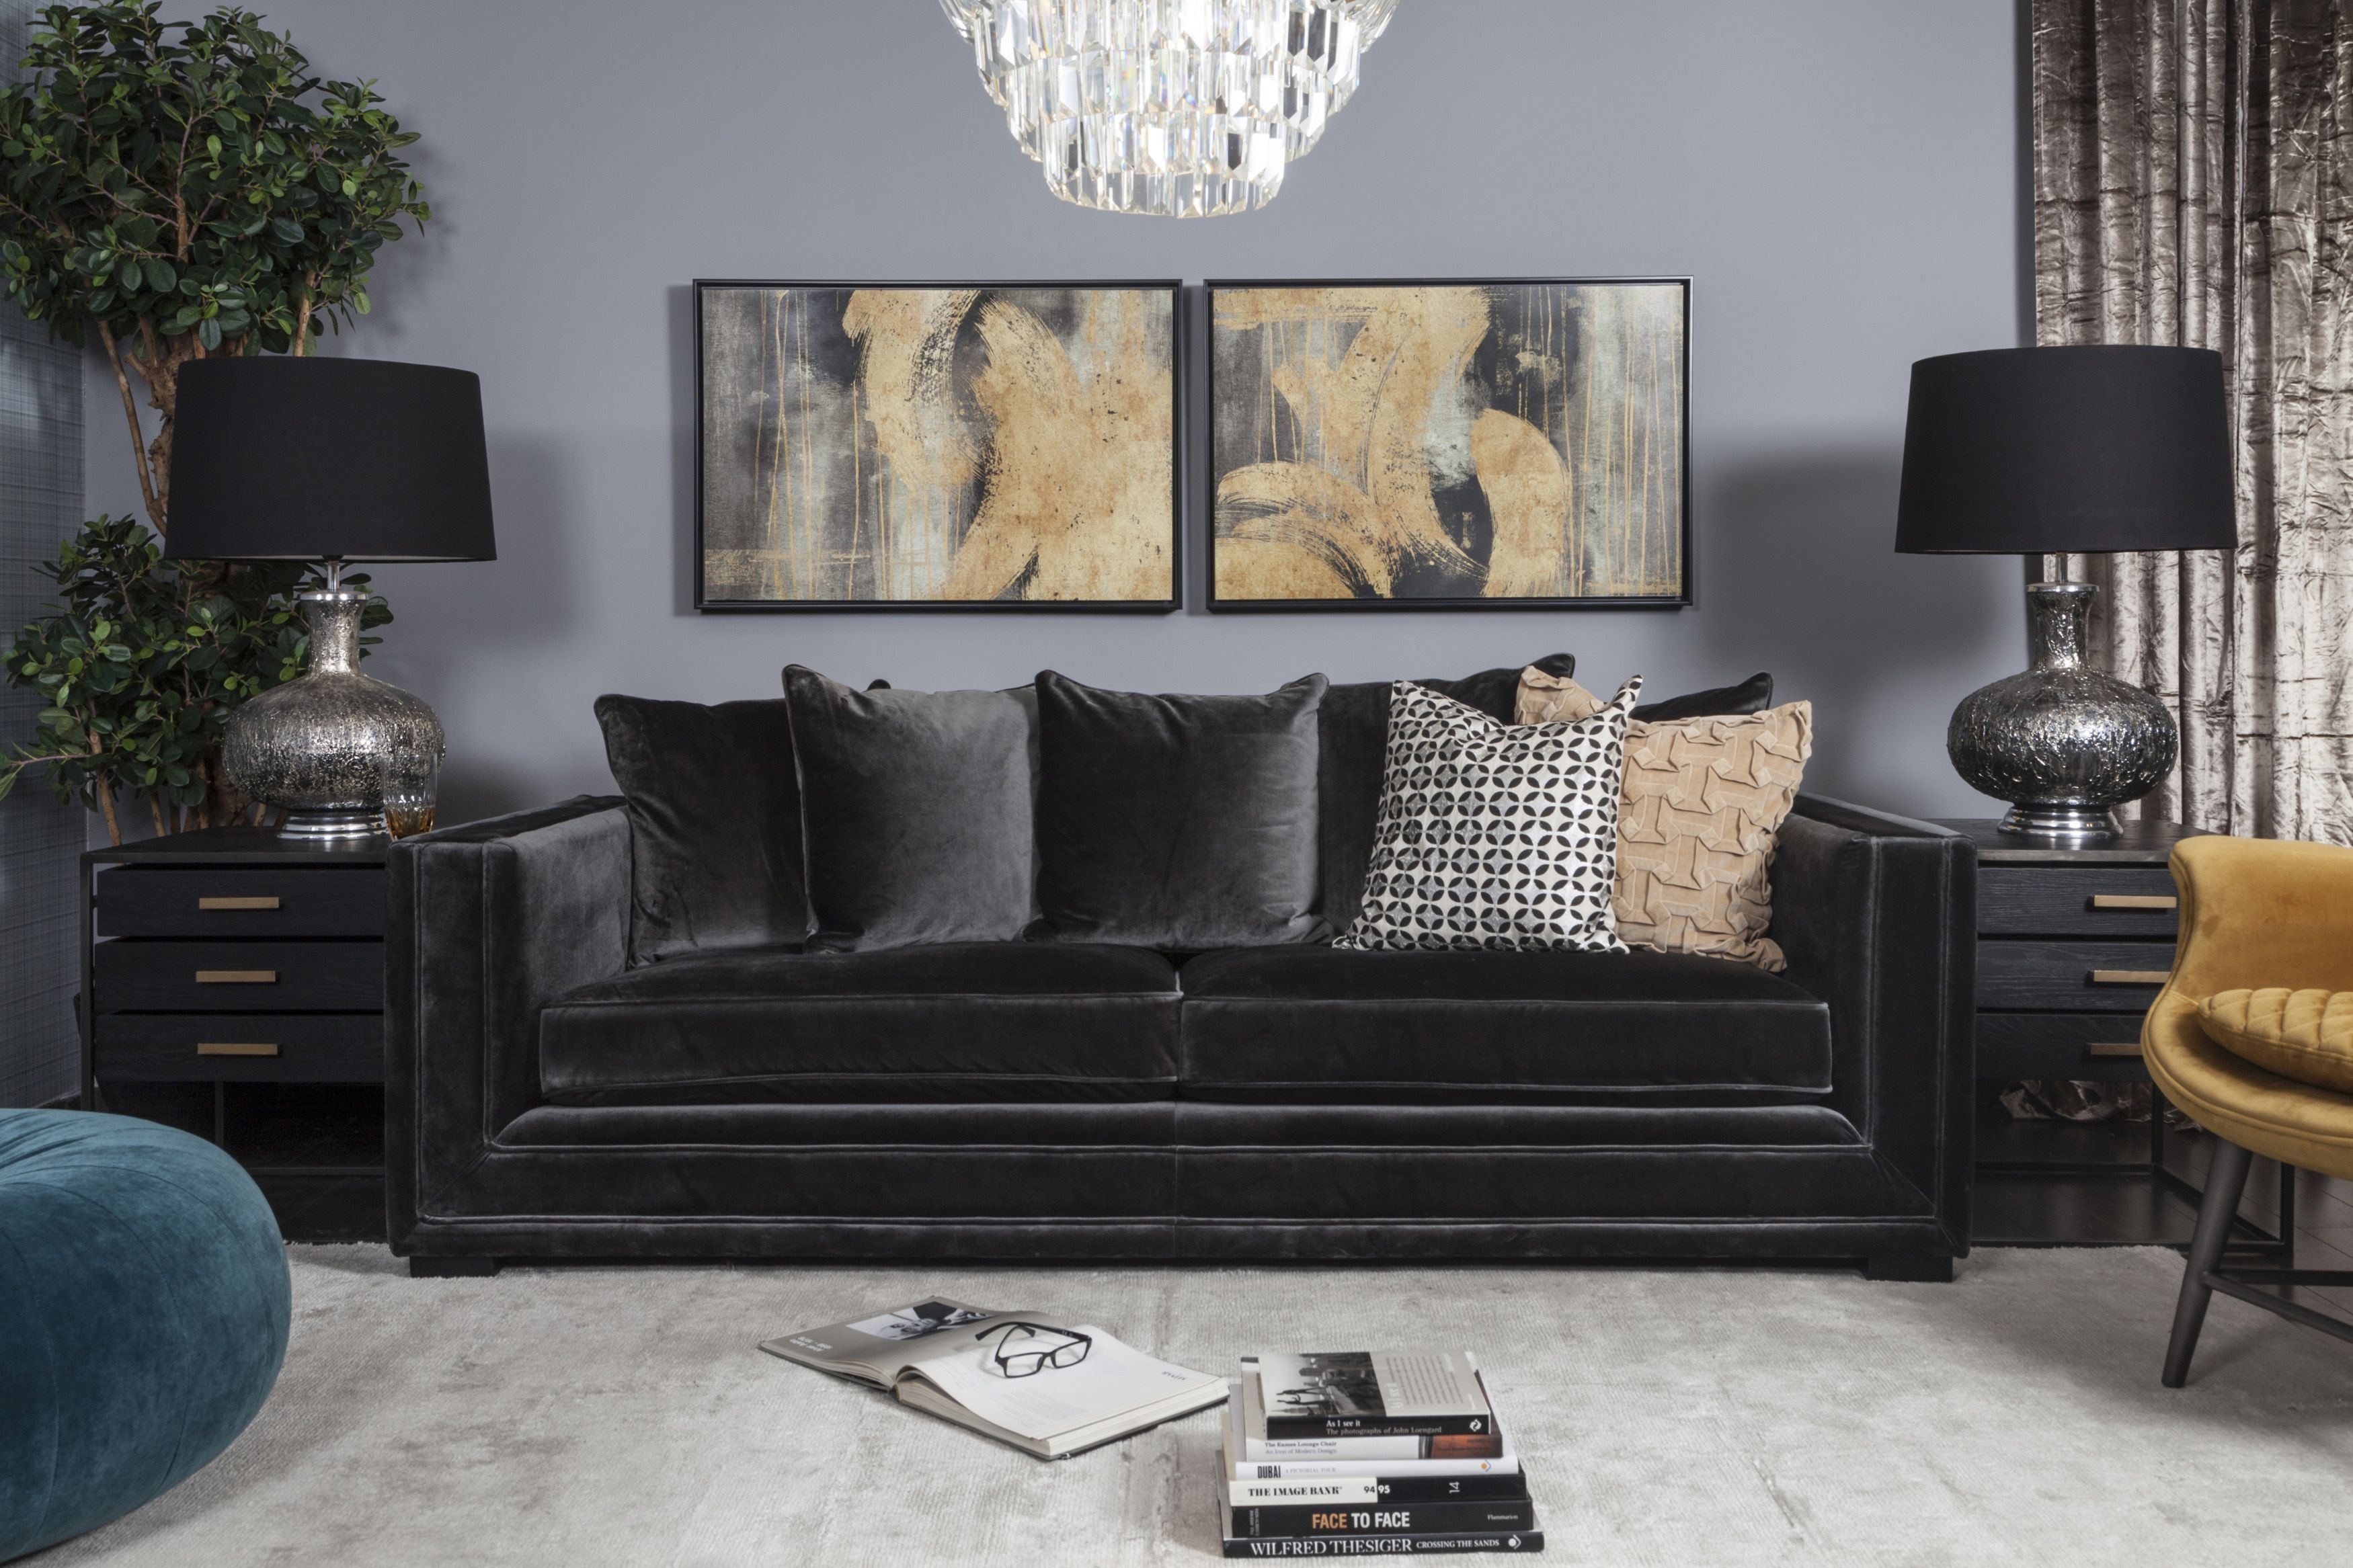 Iconic Living Dark Sofa In Between Big And Bold Accessories For